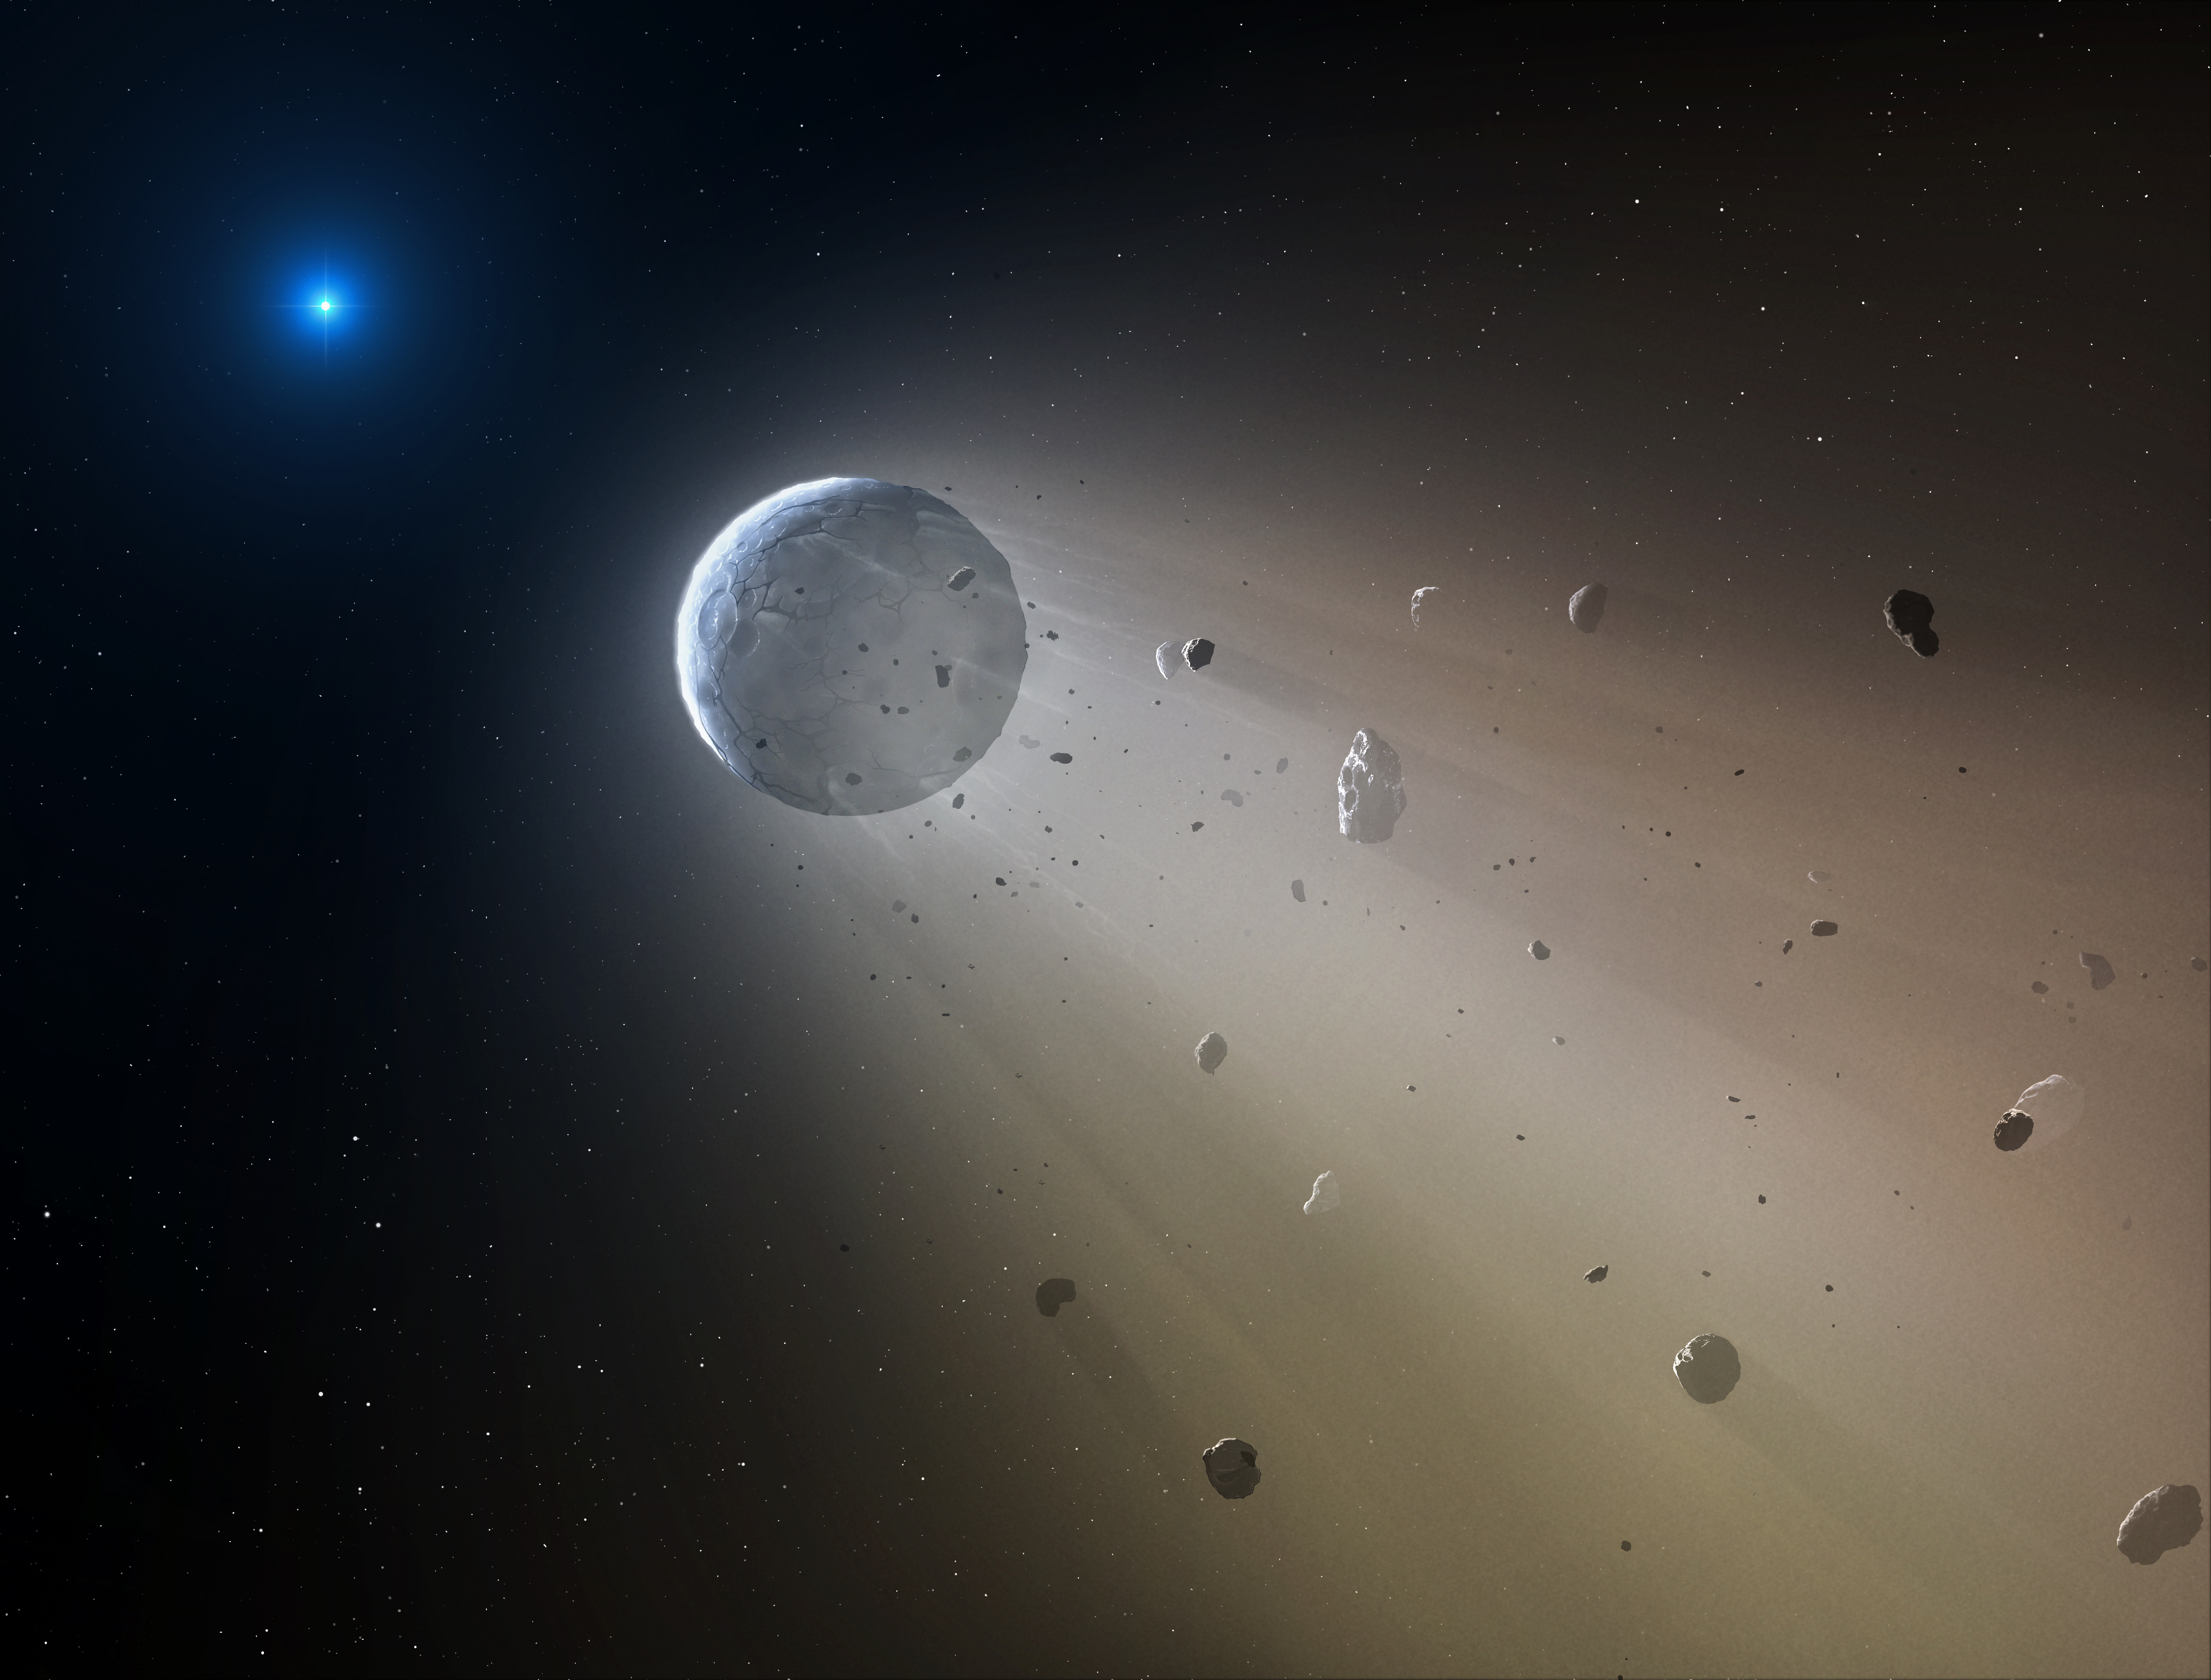 Nasas k2 finds dead star vaporizing a mini planet nasa kepler and k2 k2 finds white dwarf devouring mini planet ccuart Choice Image